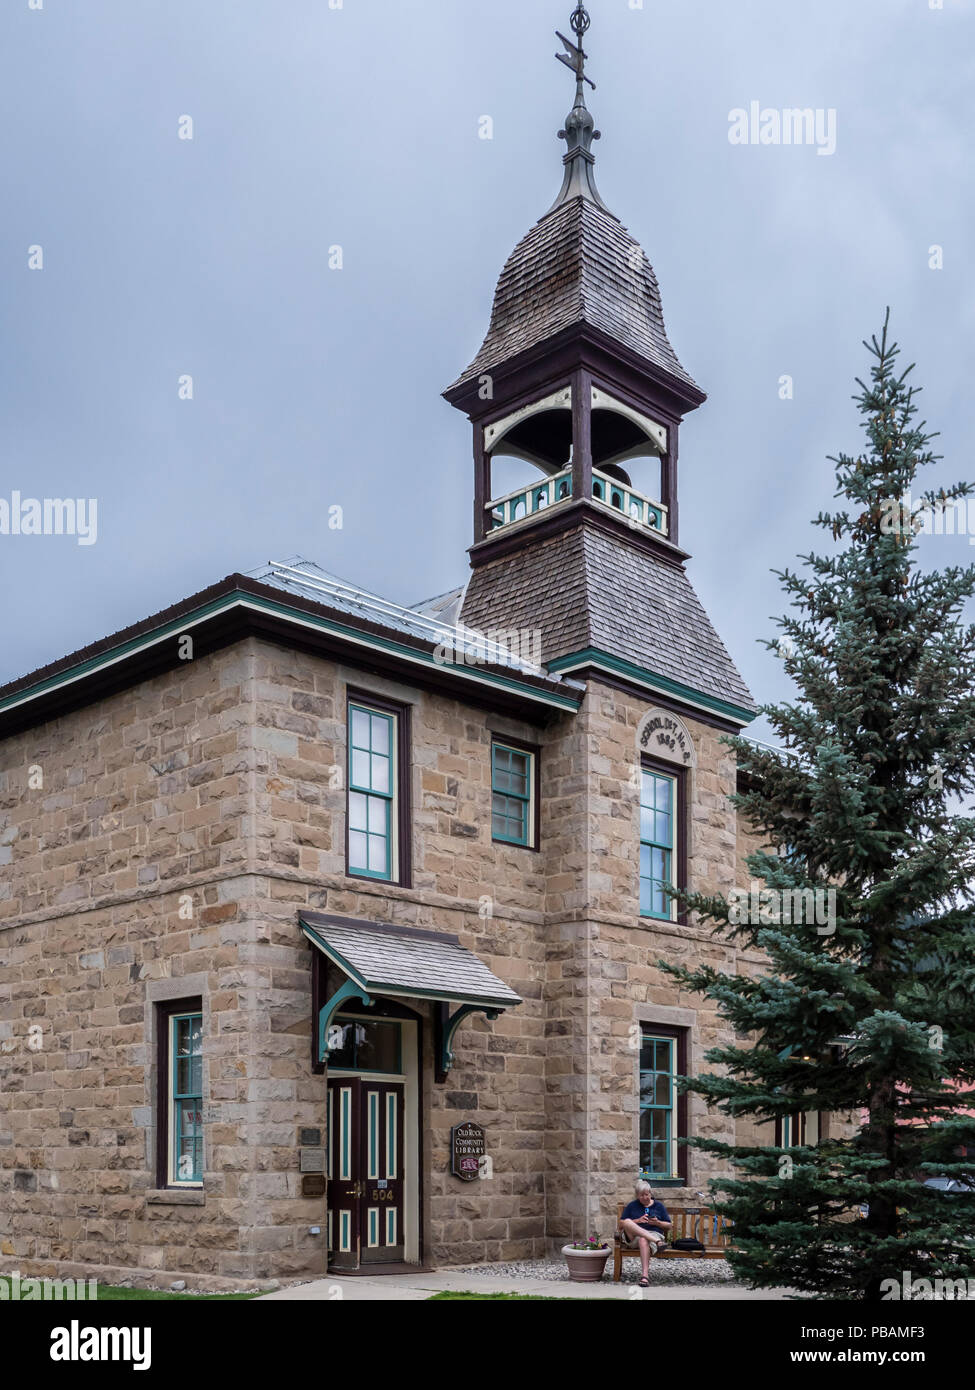 Old Rock School, now the Old Rock Community Library, Crested Butte, Colorado. - Stock Image